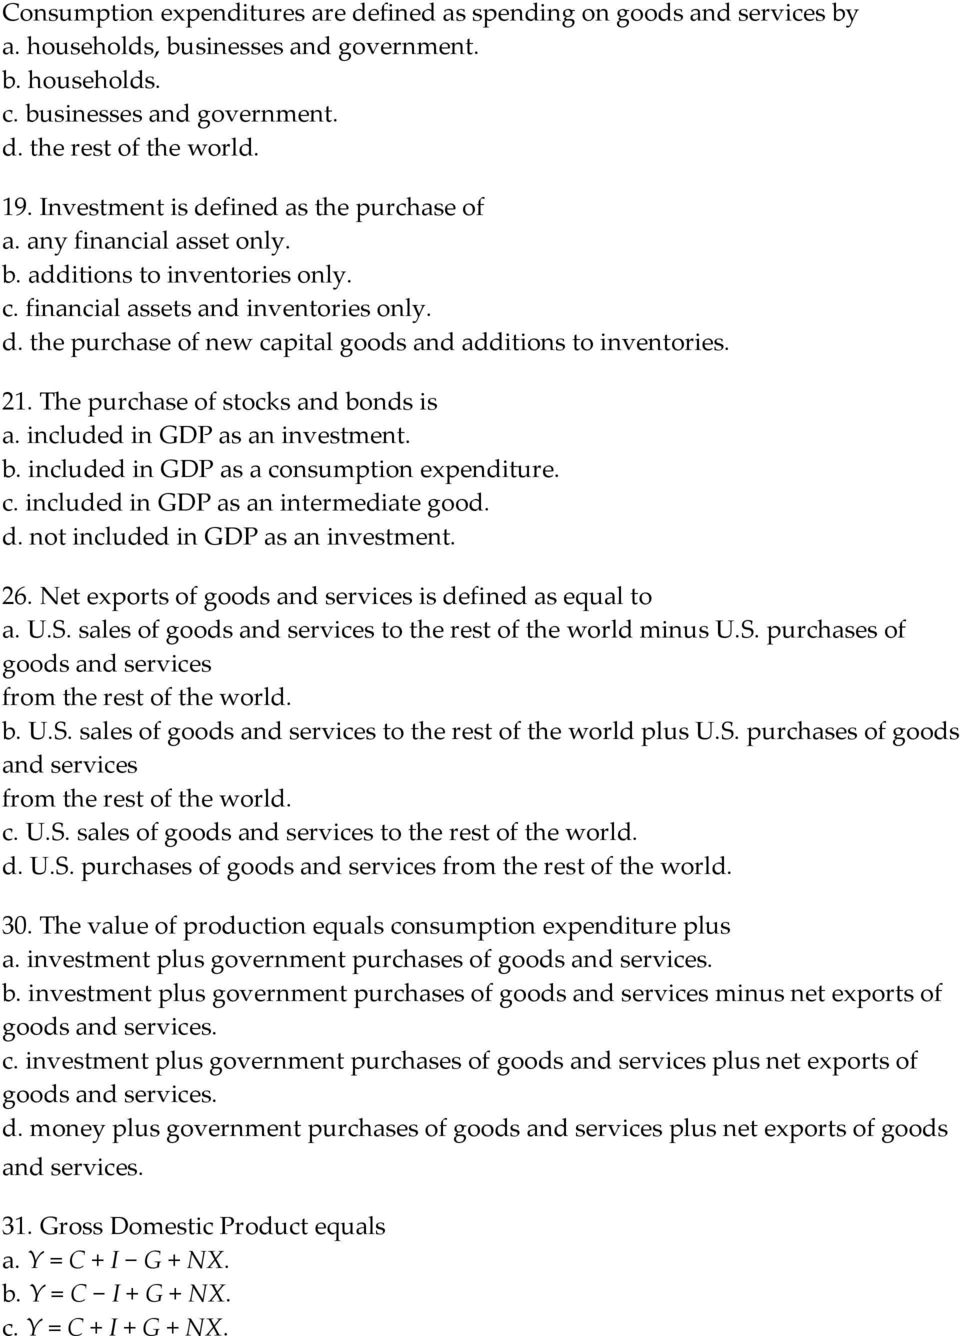 21. The purchase of stocks and bonds is a. included in GDP as an investment. b. included in GDP as a consumption expenditure. c. included in GDP as an intermediate good. d.